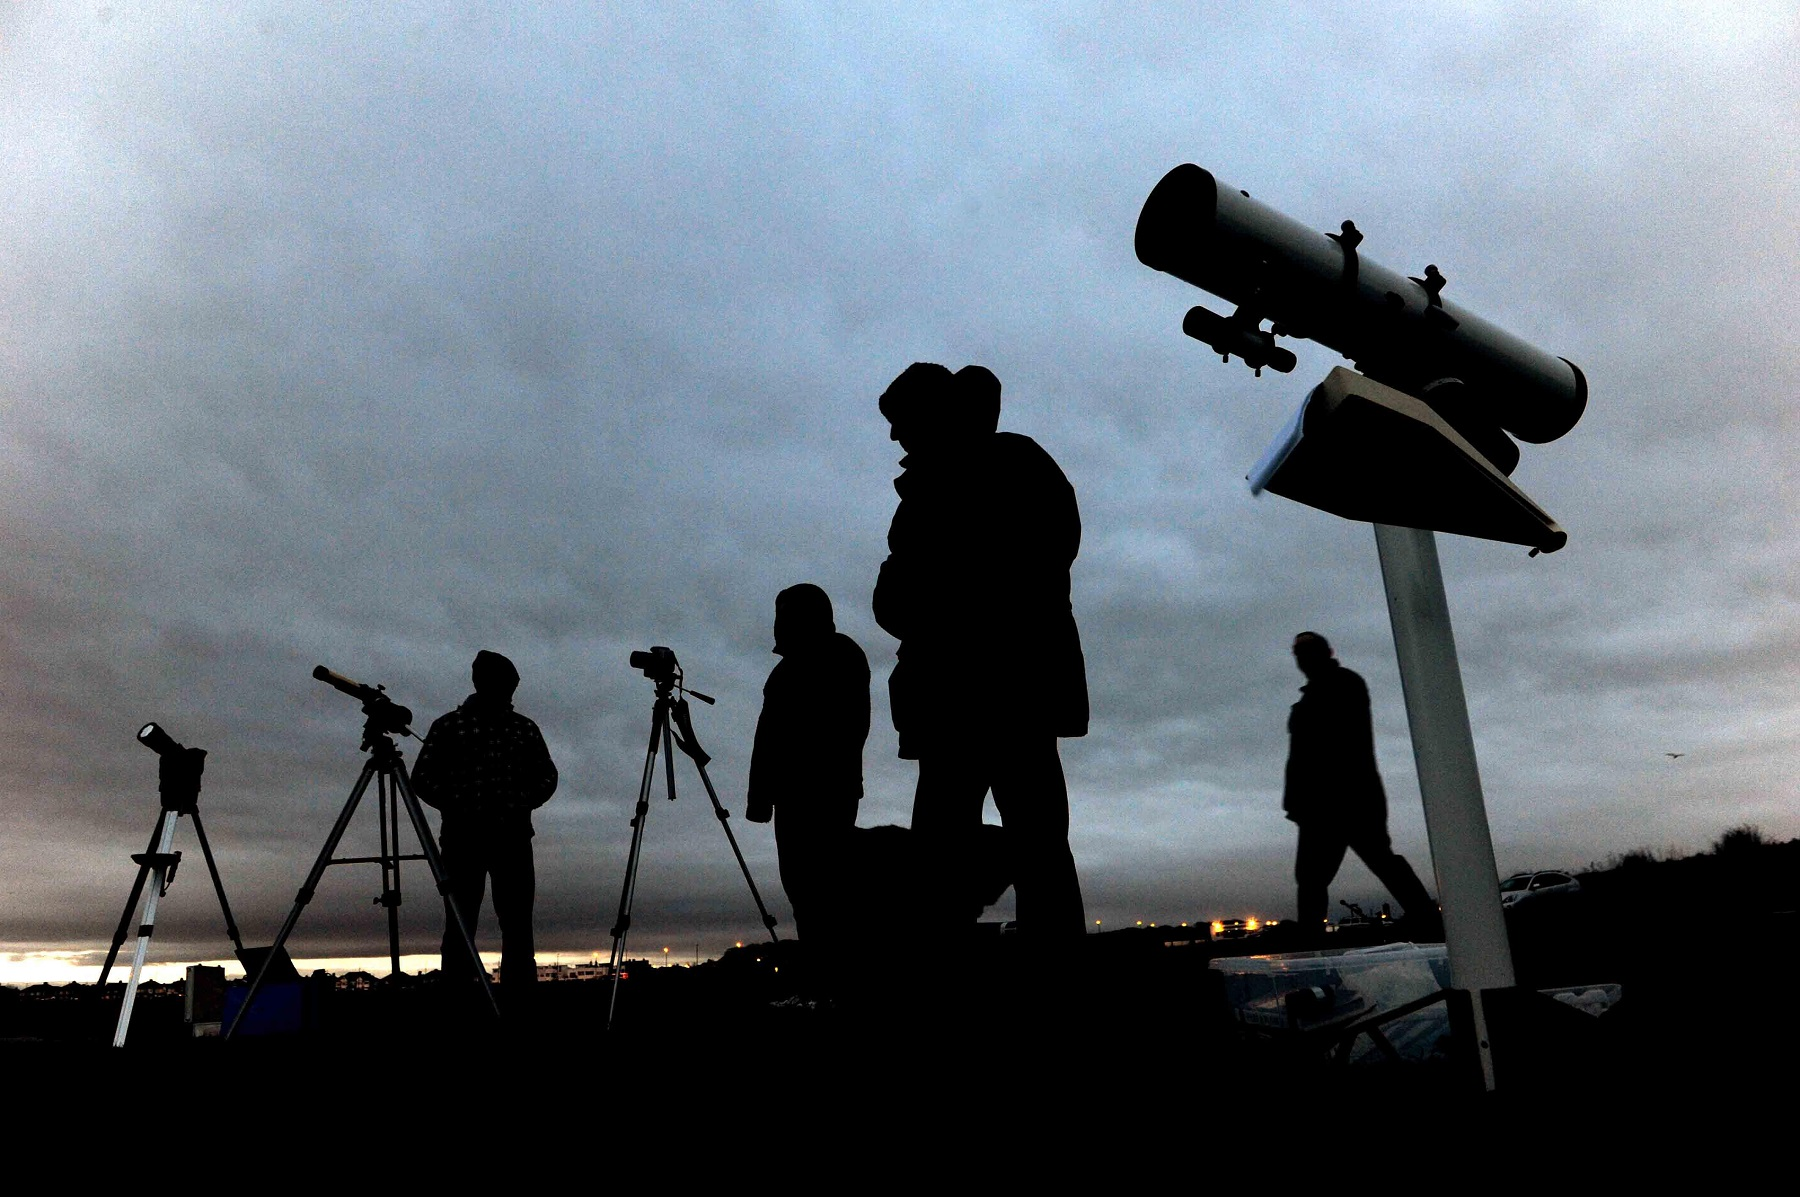 People stand with telescopes